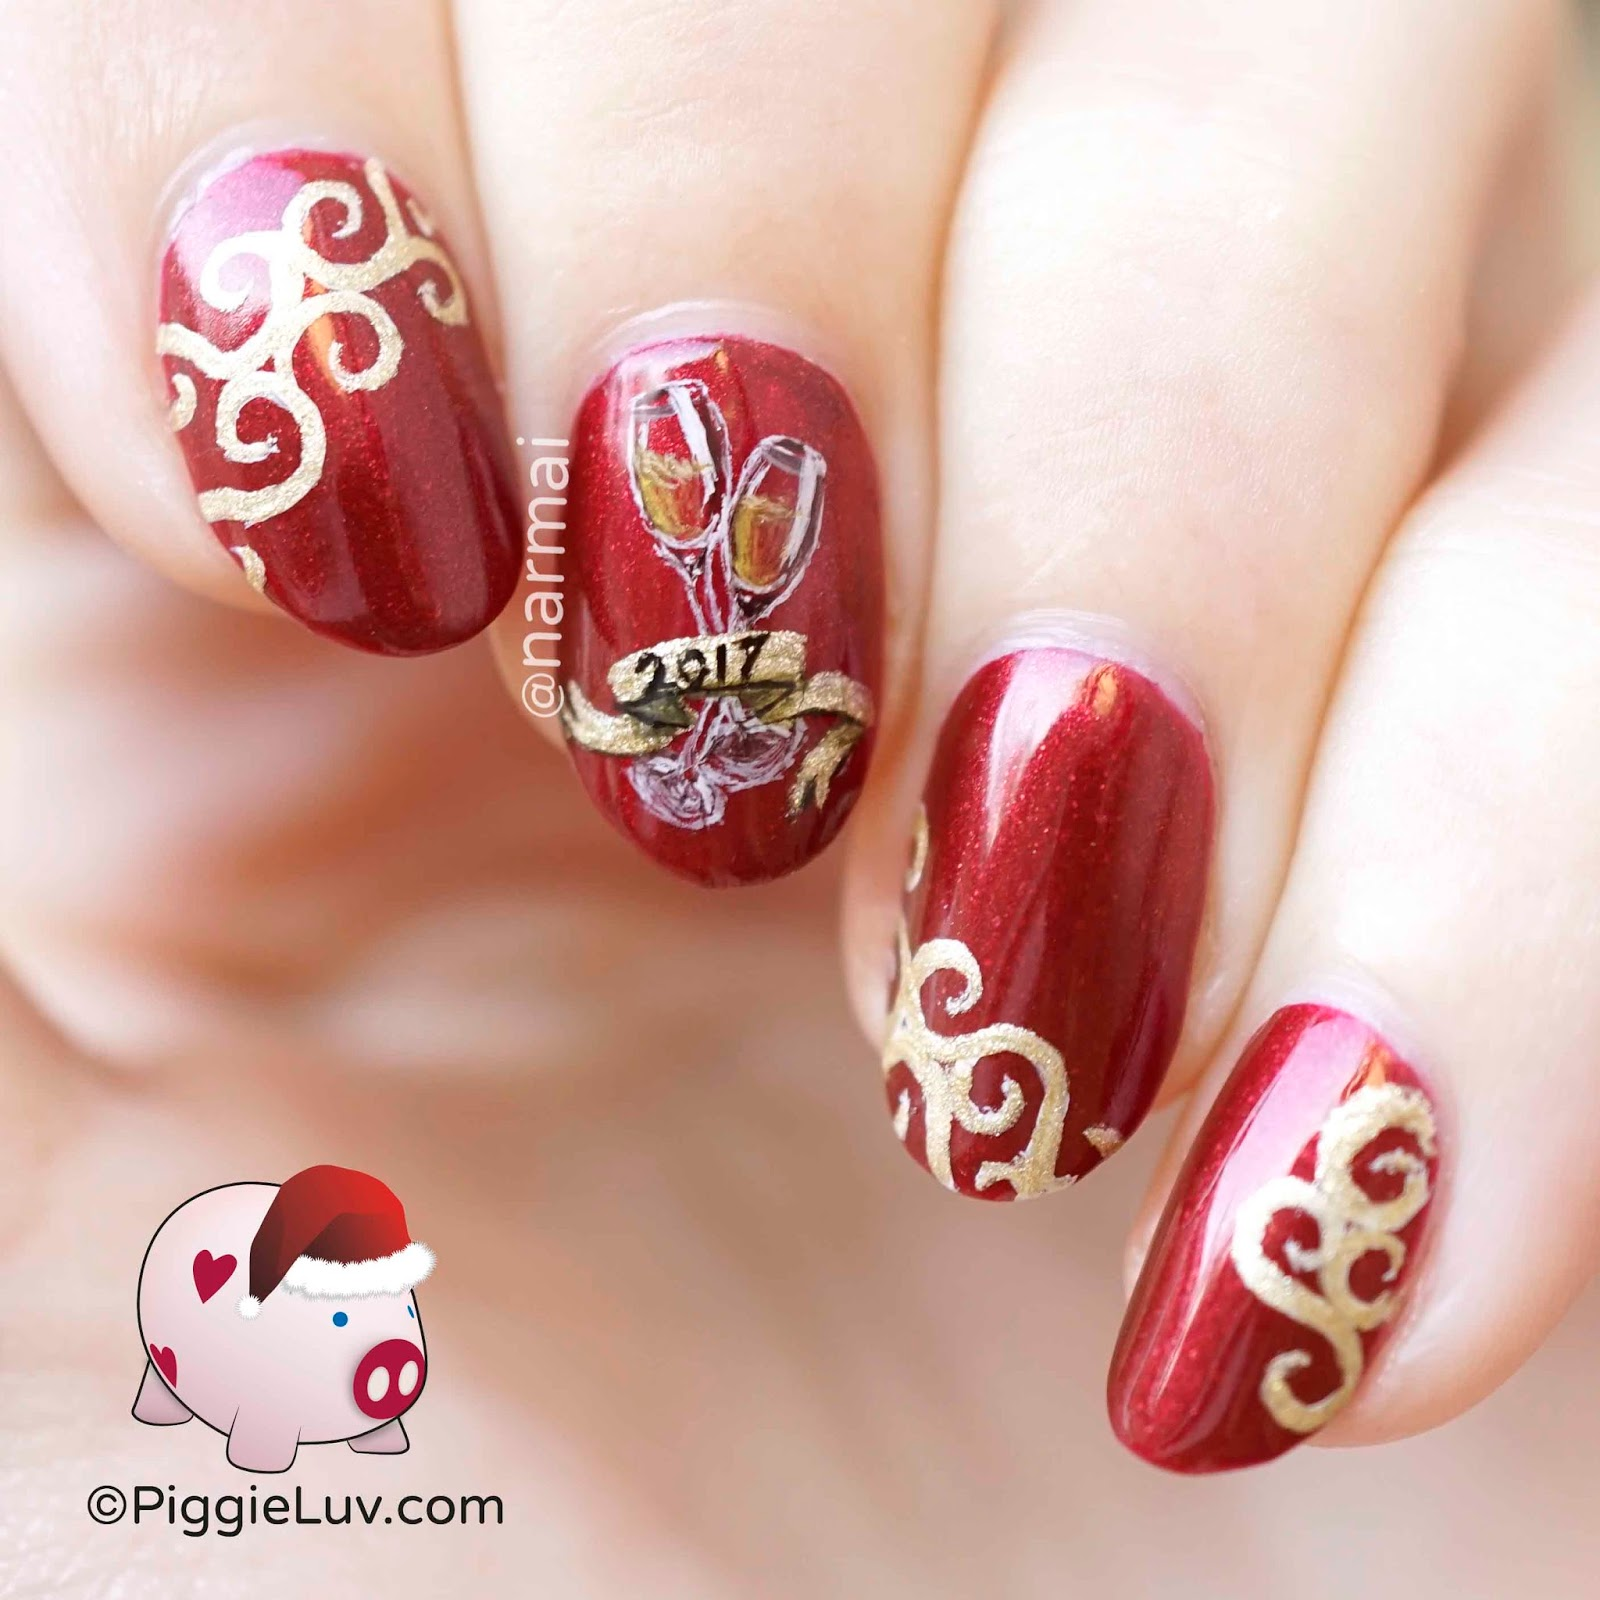 piggieluv: 2017 new year's nail art